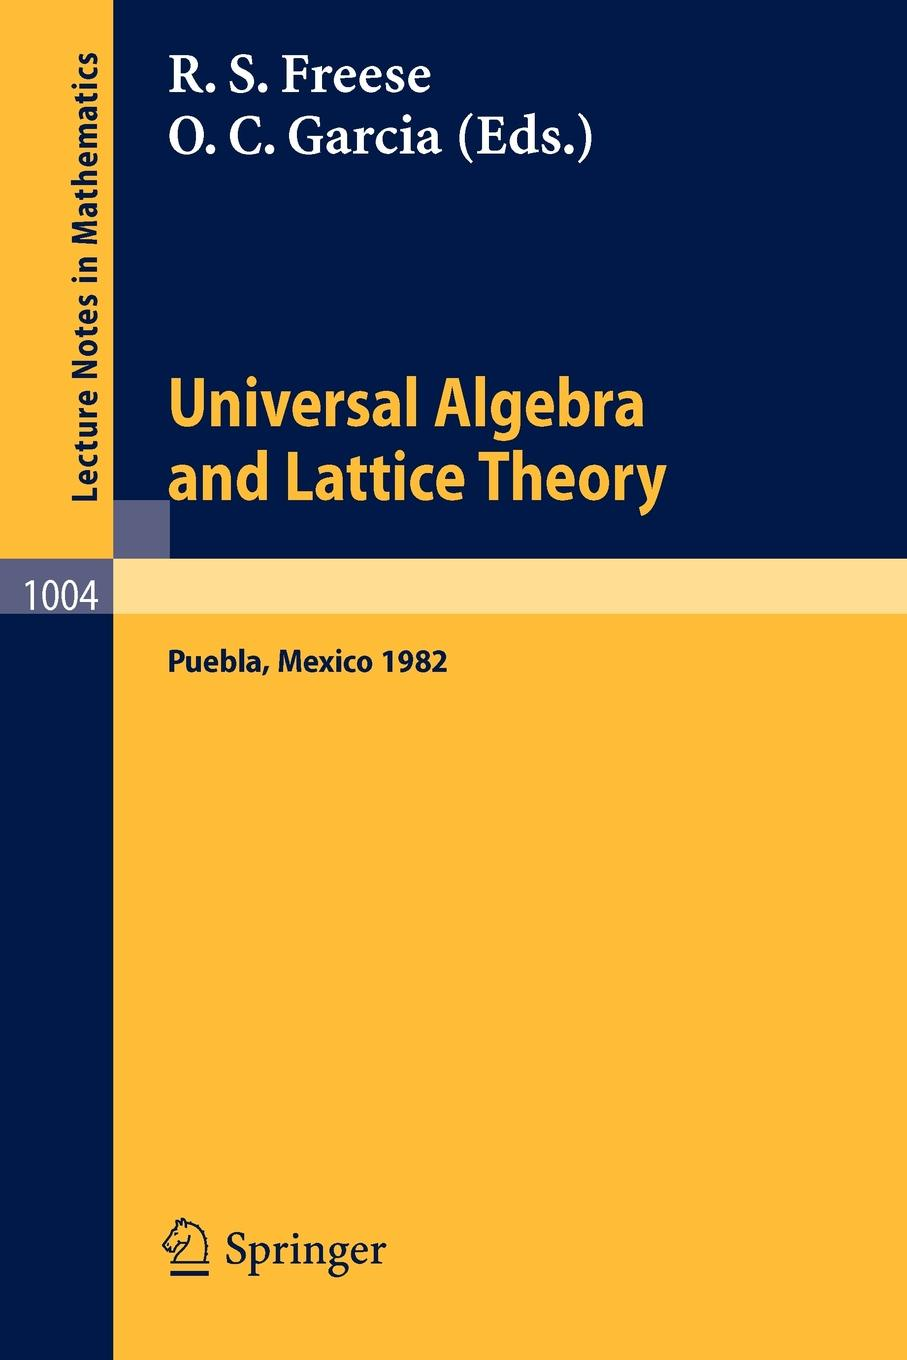 Universal Algebra and Lattice Theory. Proceedings of the Fourth International Conference Held at Puebla, Mexico, 1982